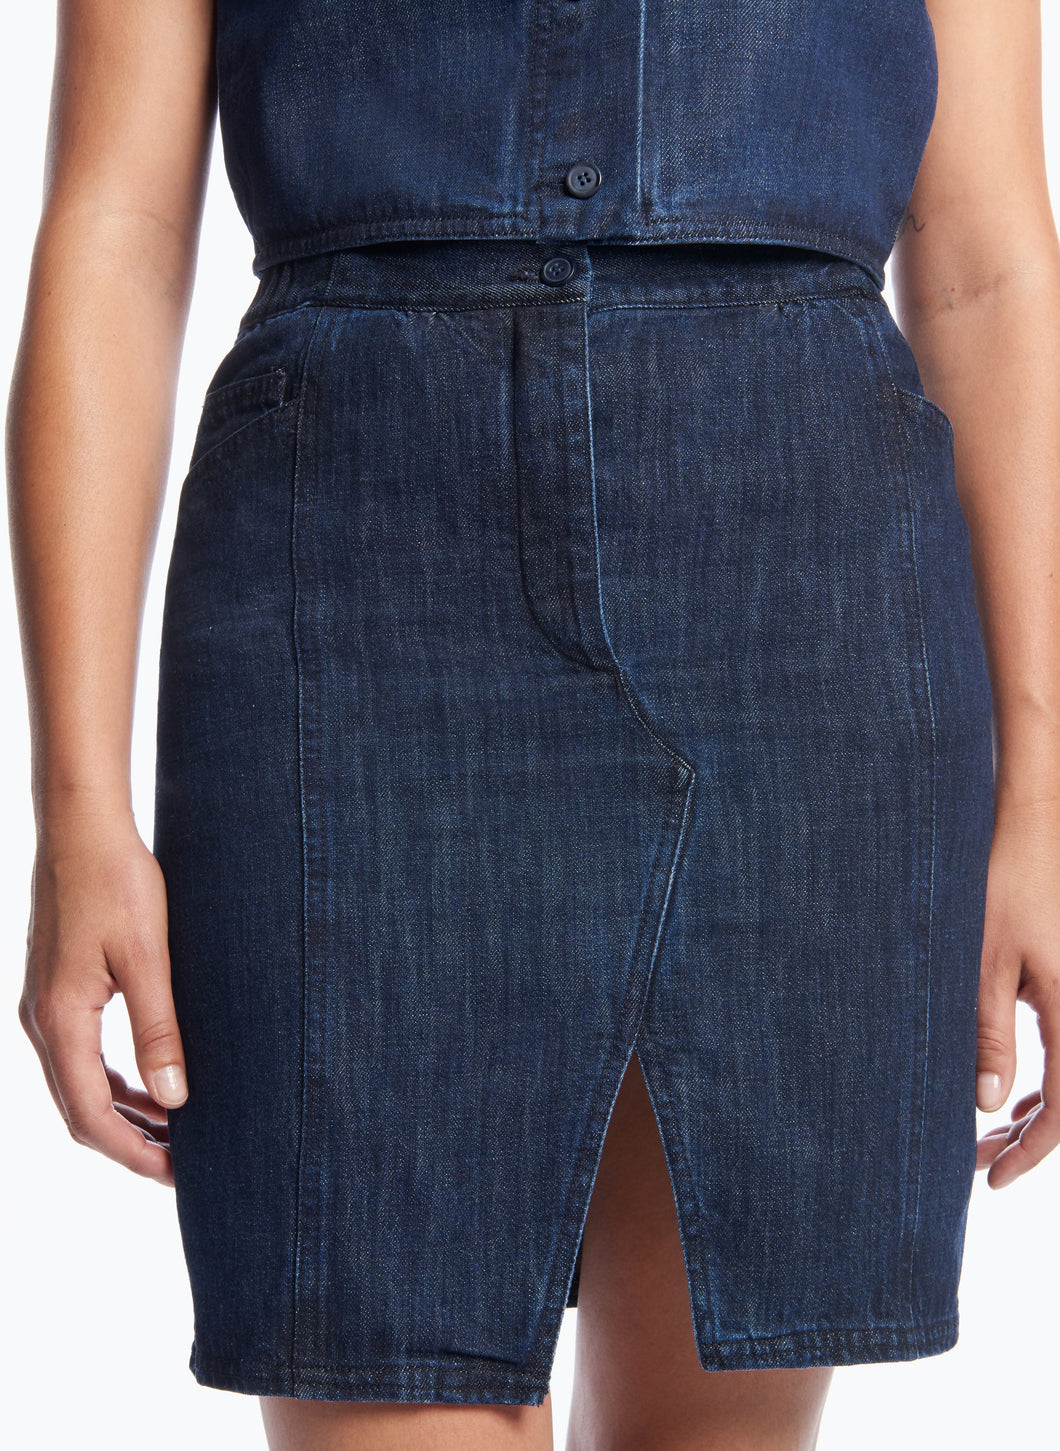 5-Pocket Skirt with Front Cuts in Stoned Denim